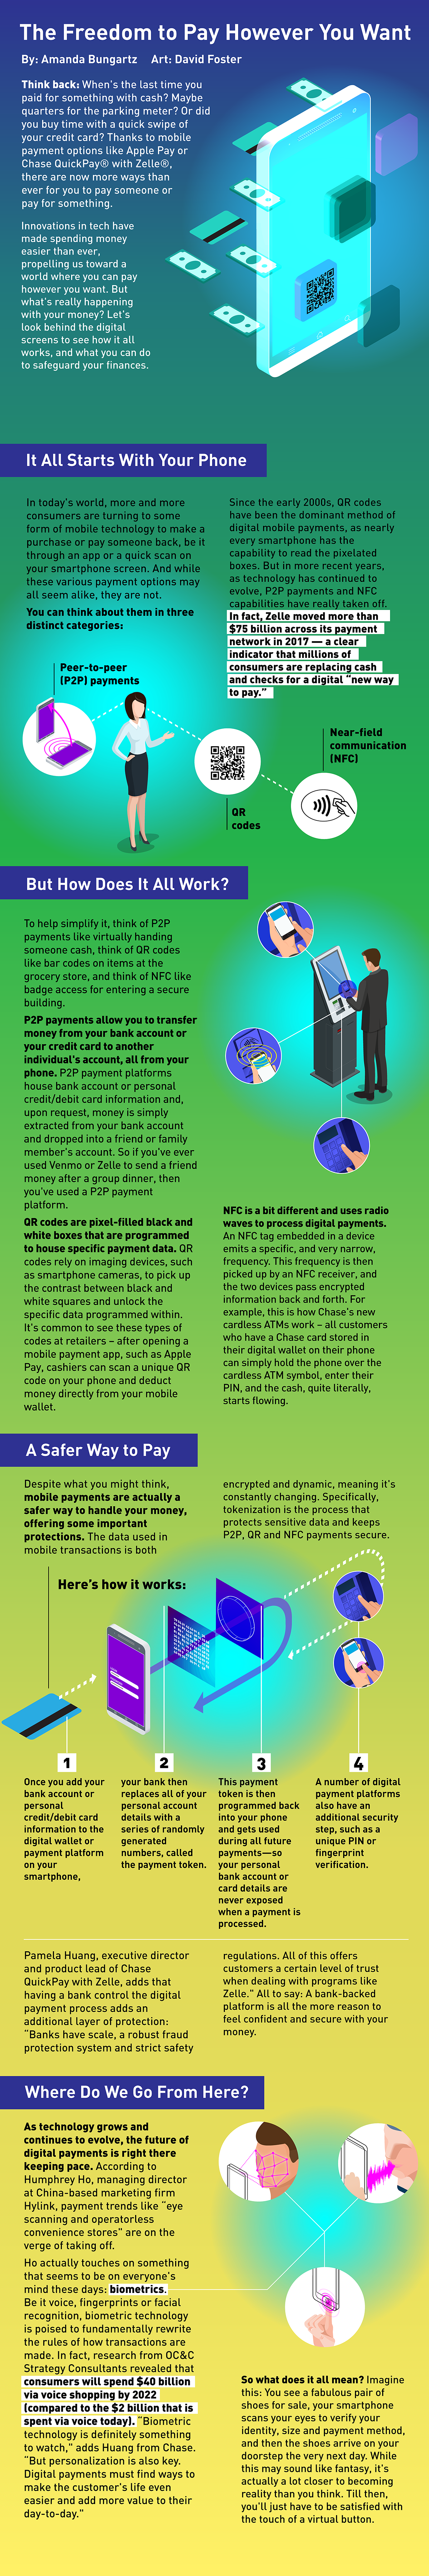 David Foster Graphics - The Freedom To Pay However You Want